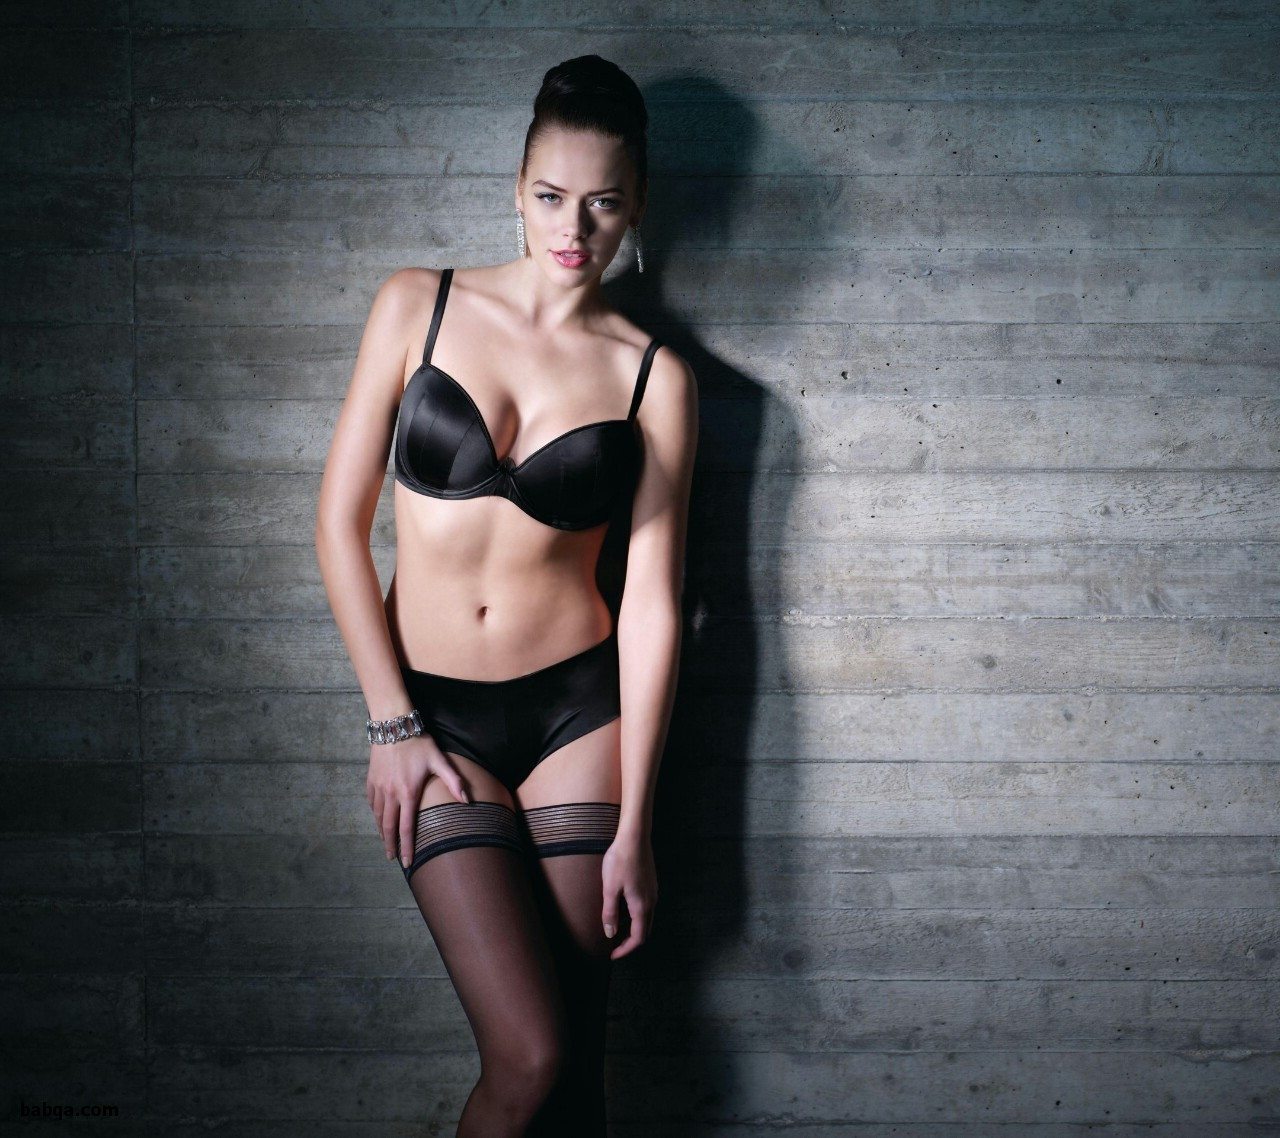 foxy lady lingerie and hot nude women in lingerie